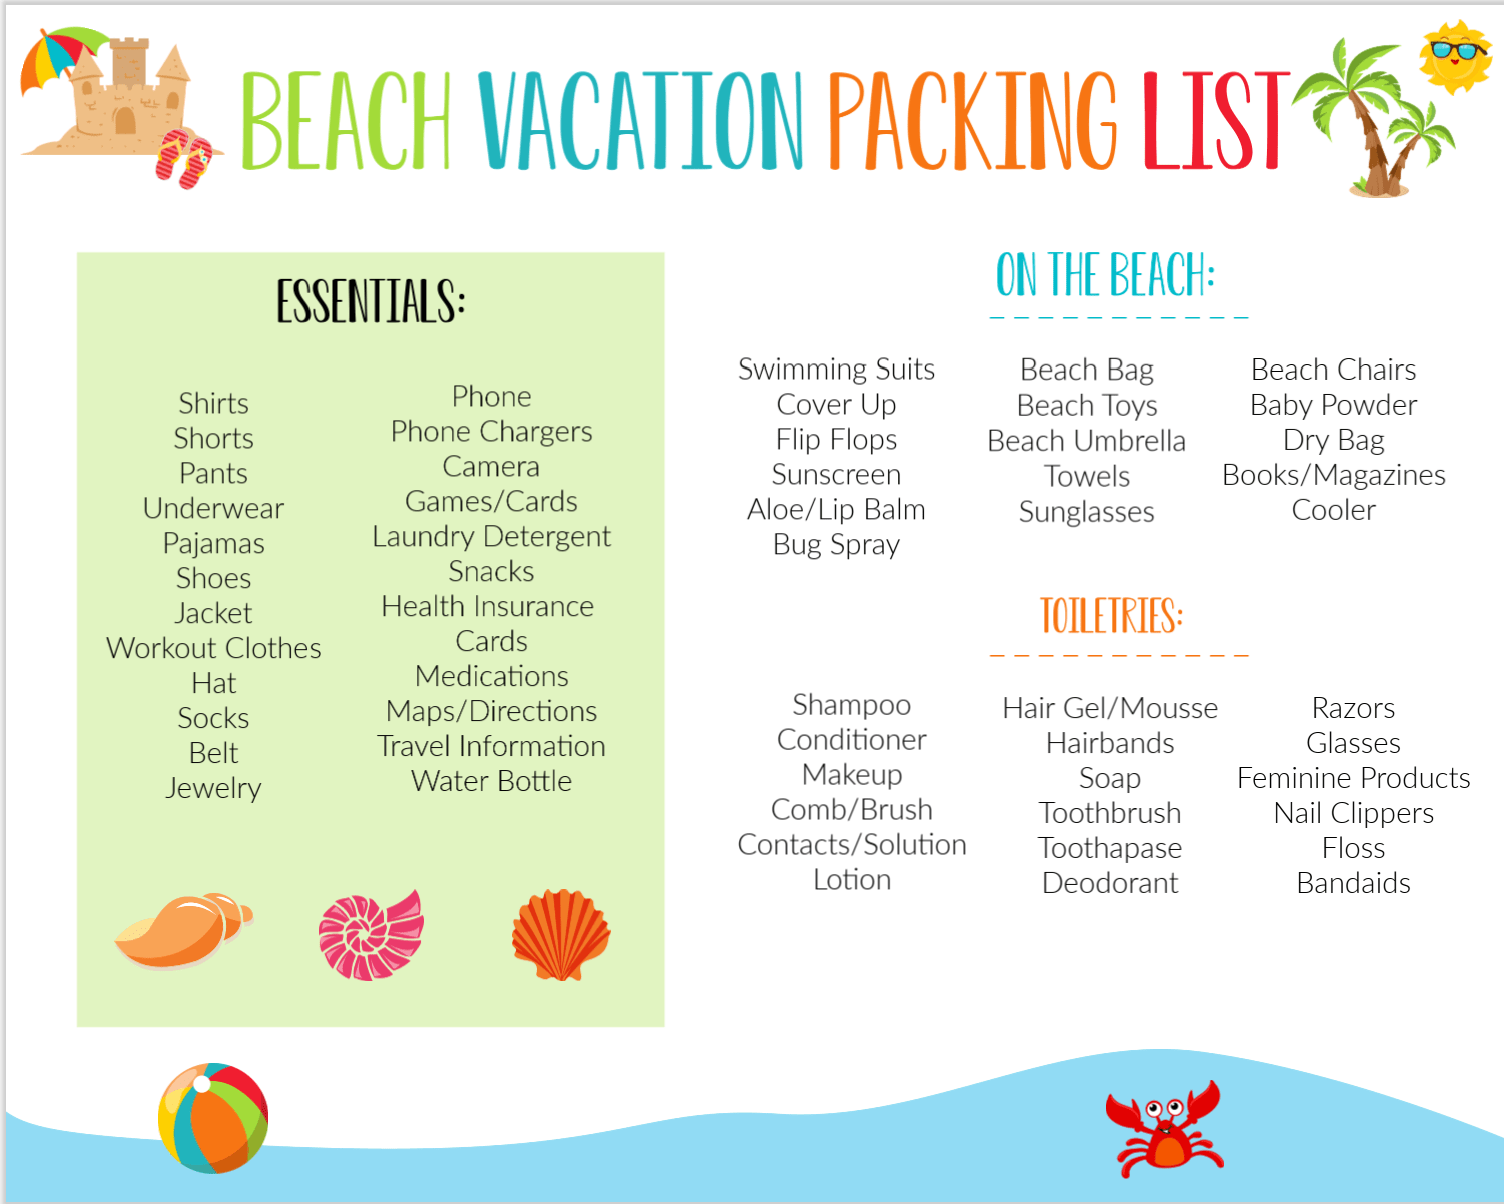 image regarding Beach Vacation Packing List Printable named The Greatest Seashore Holiday Packing Checklist for People Enjoyment